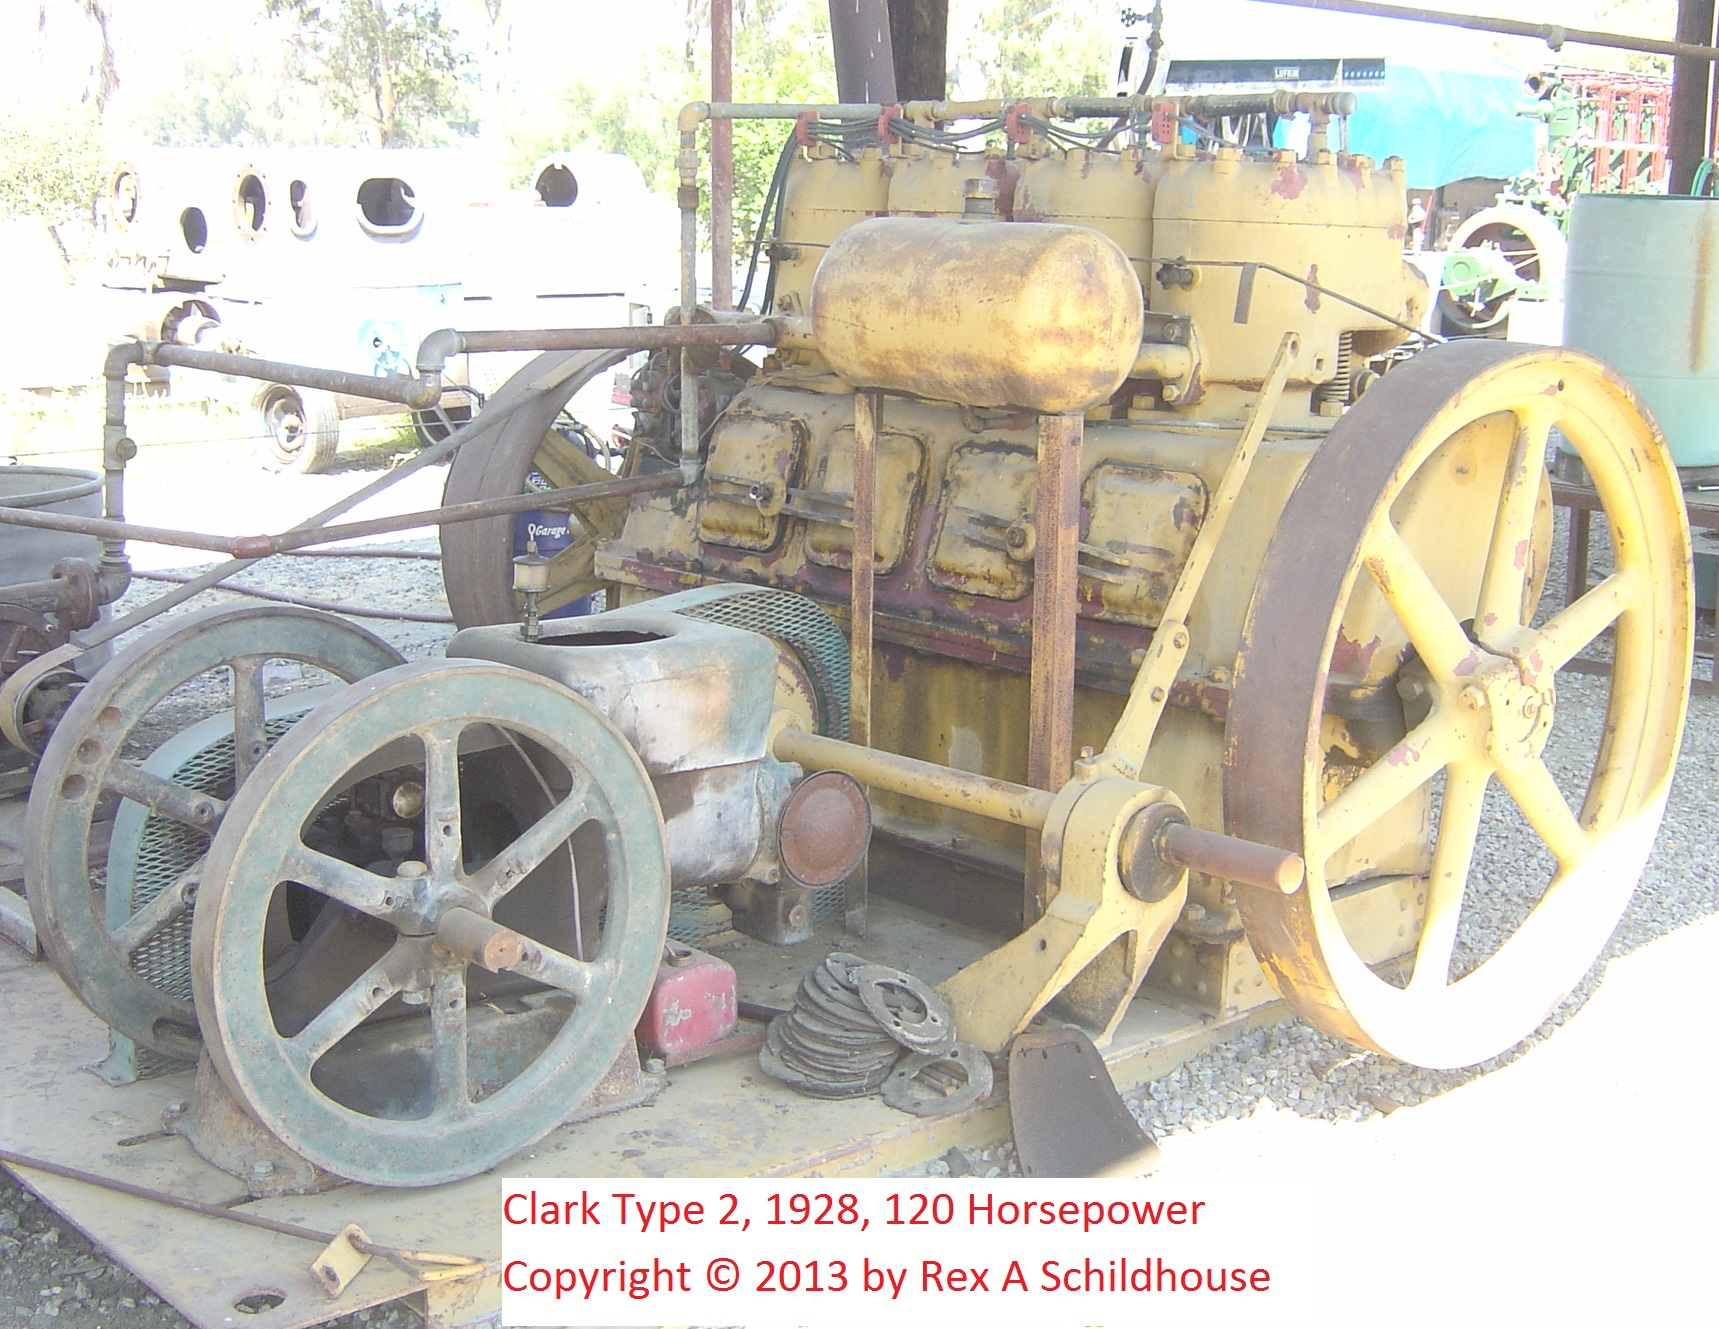 Clark Type 2 Gas Engine